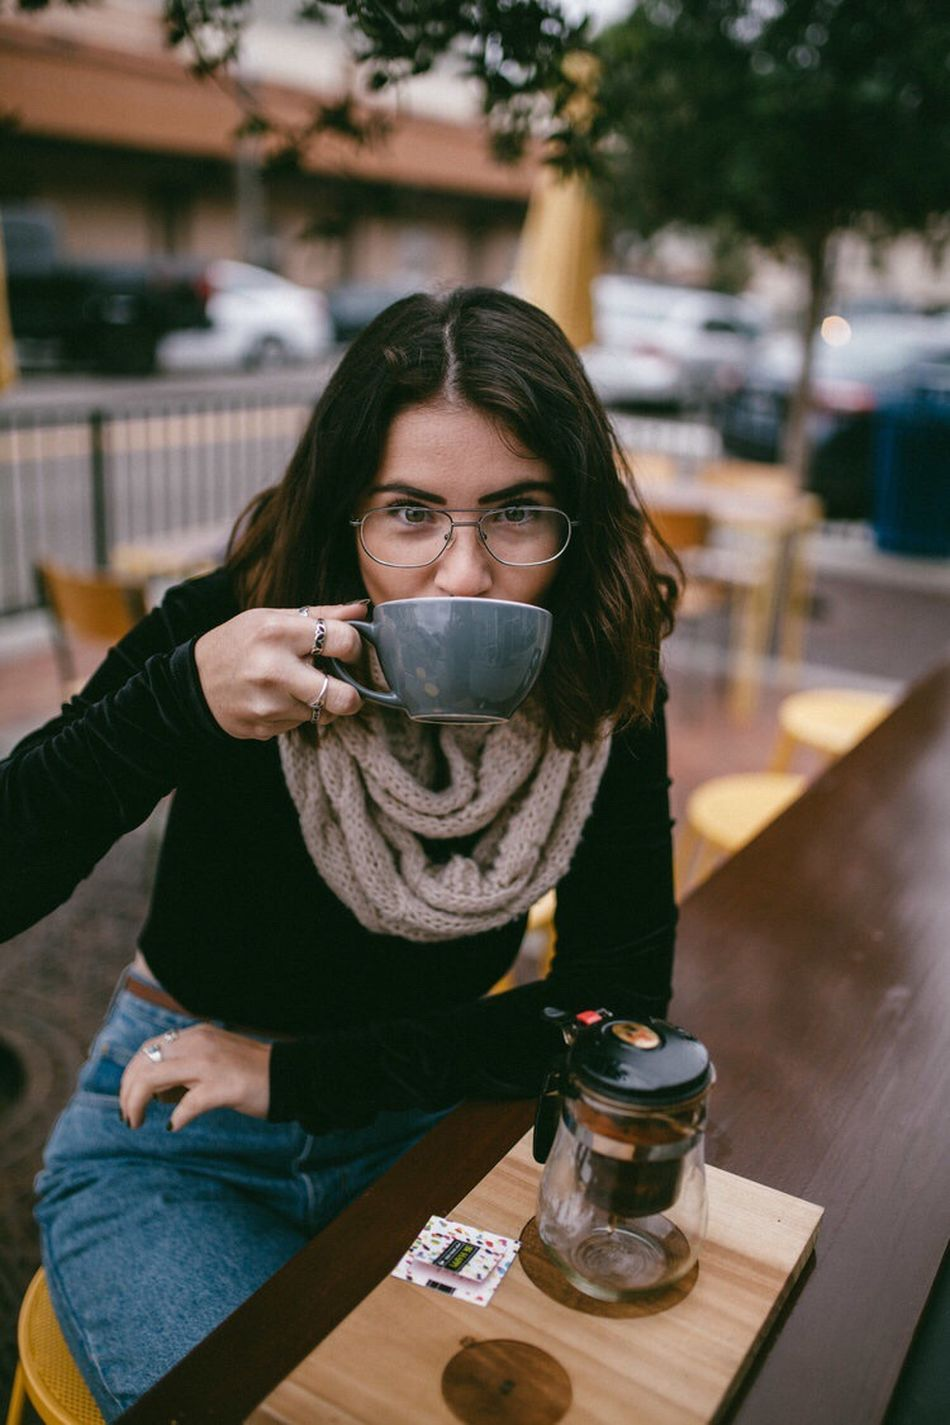 Real People Table Drink One Person Young Adult Young Women Drinking Front View Indoors  Food And Drink Focus On Foreground Lifestyles Sitting Portrait Eyeglasses  Day Women Adult People Adults Only Tea Lifestyle Cafe Coffee Latte